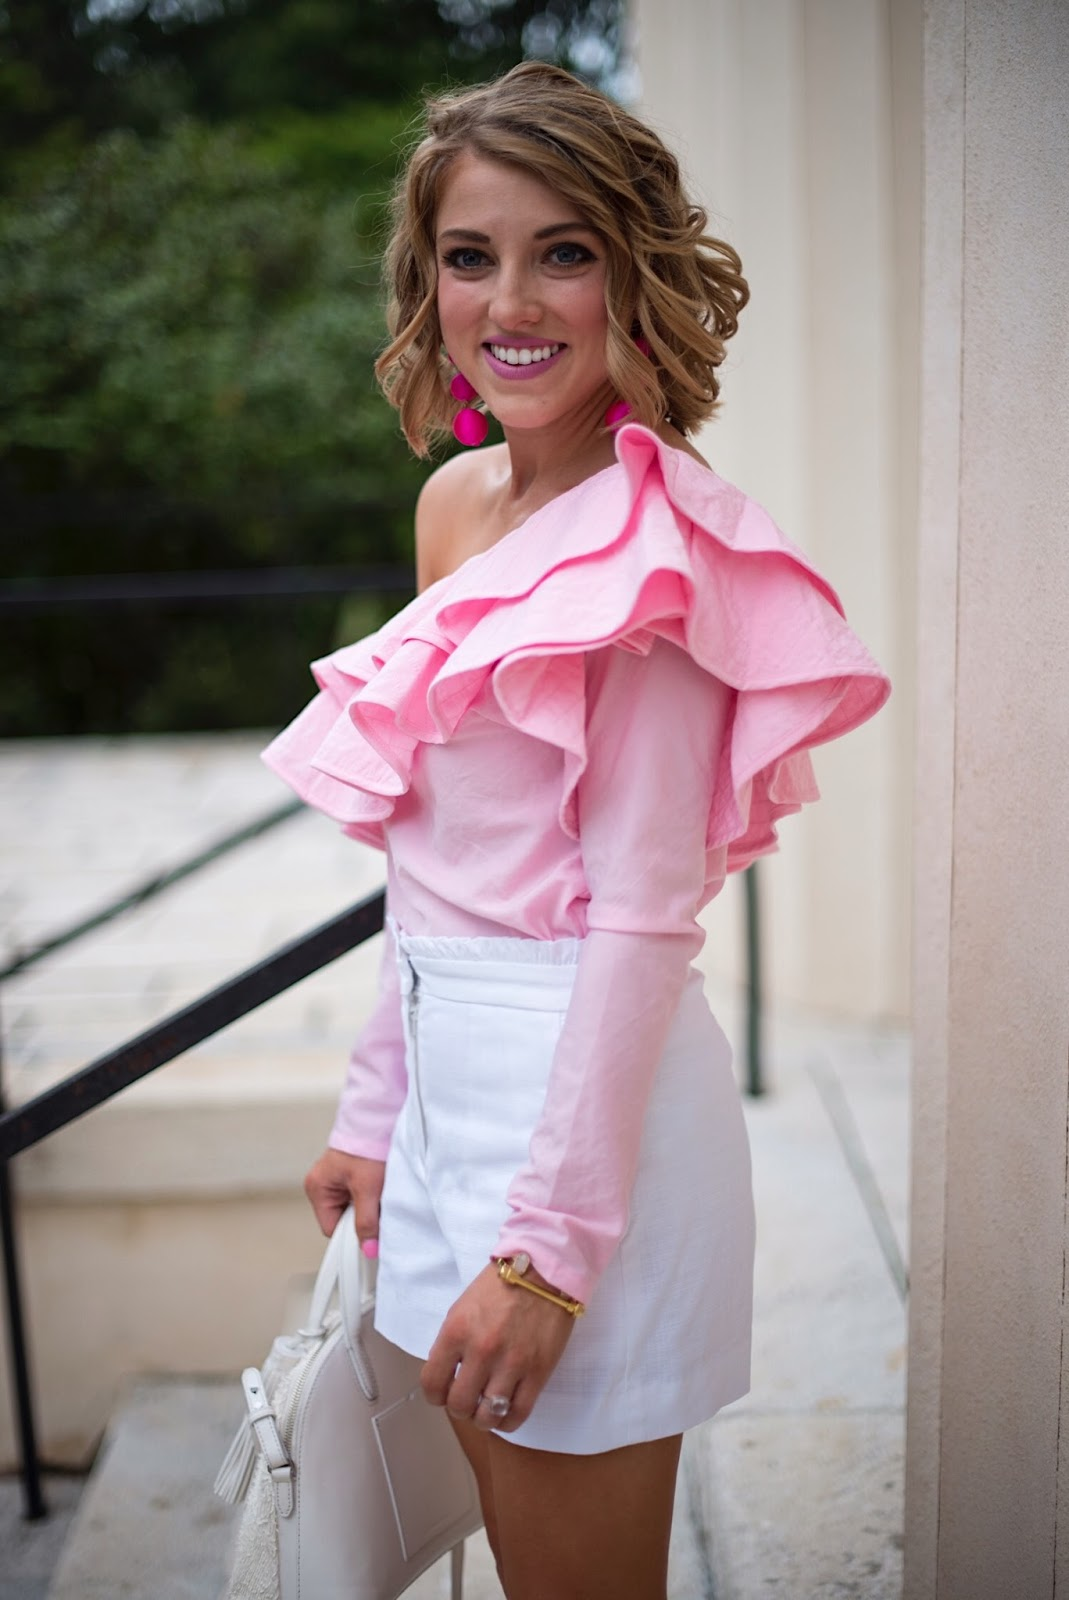 Ruffle Style - Click through to see more on Something Delightful Blog!